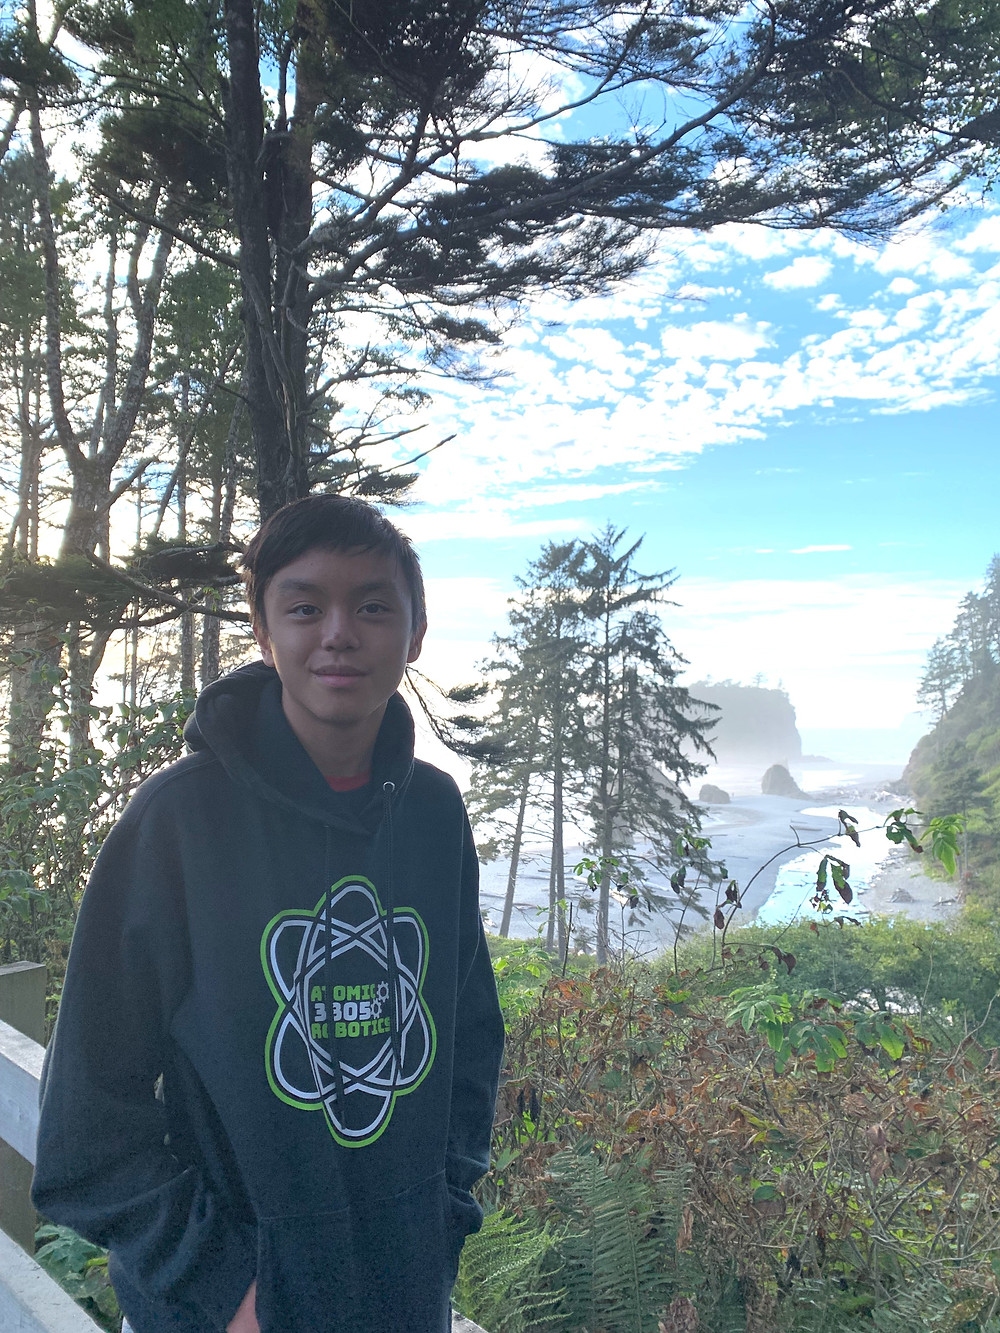 Ricardo, a Filipino young person with short black hair, stands in front of a forest and water landscape and sky with his hands in the pockets of a blue sweatshirt he's wearing.